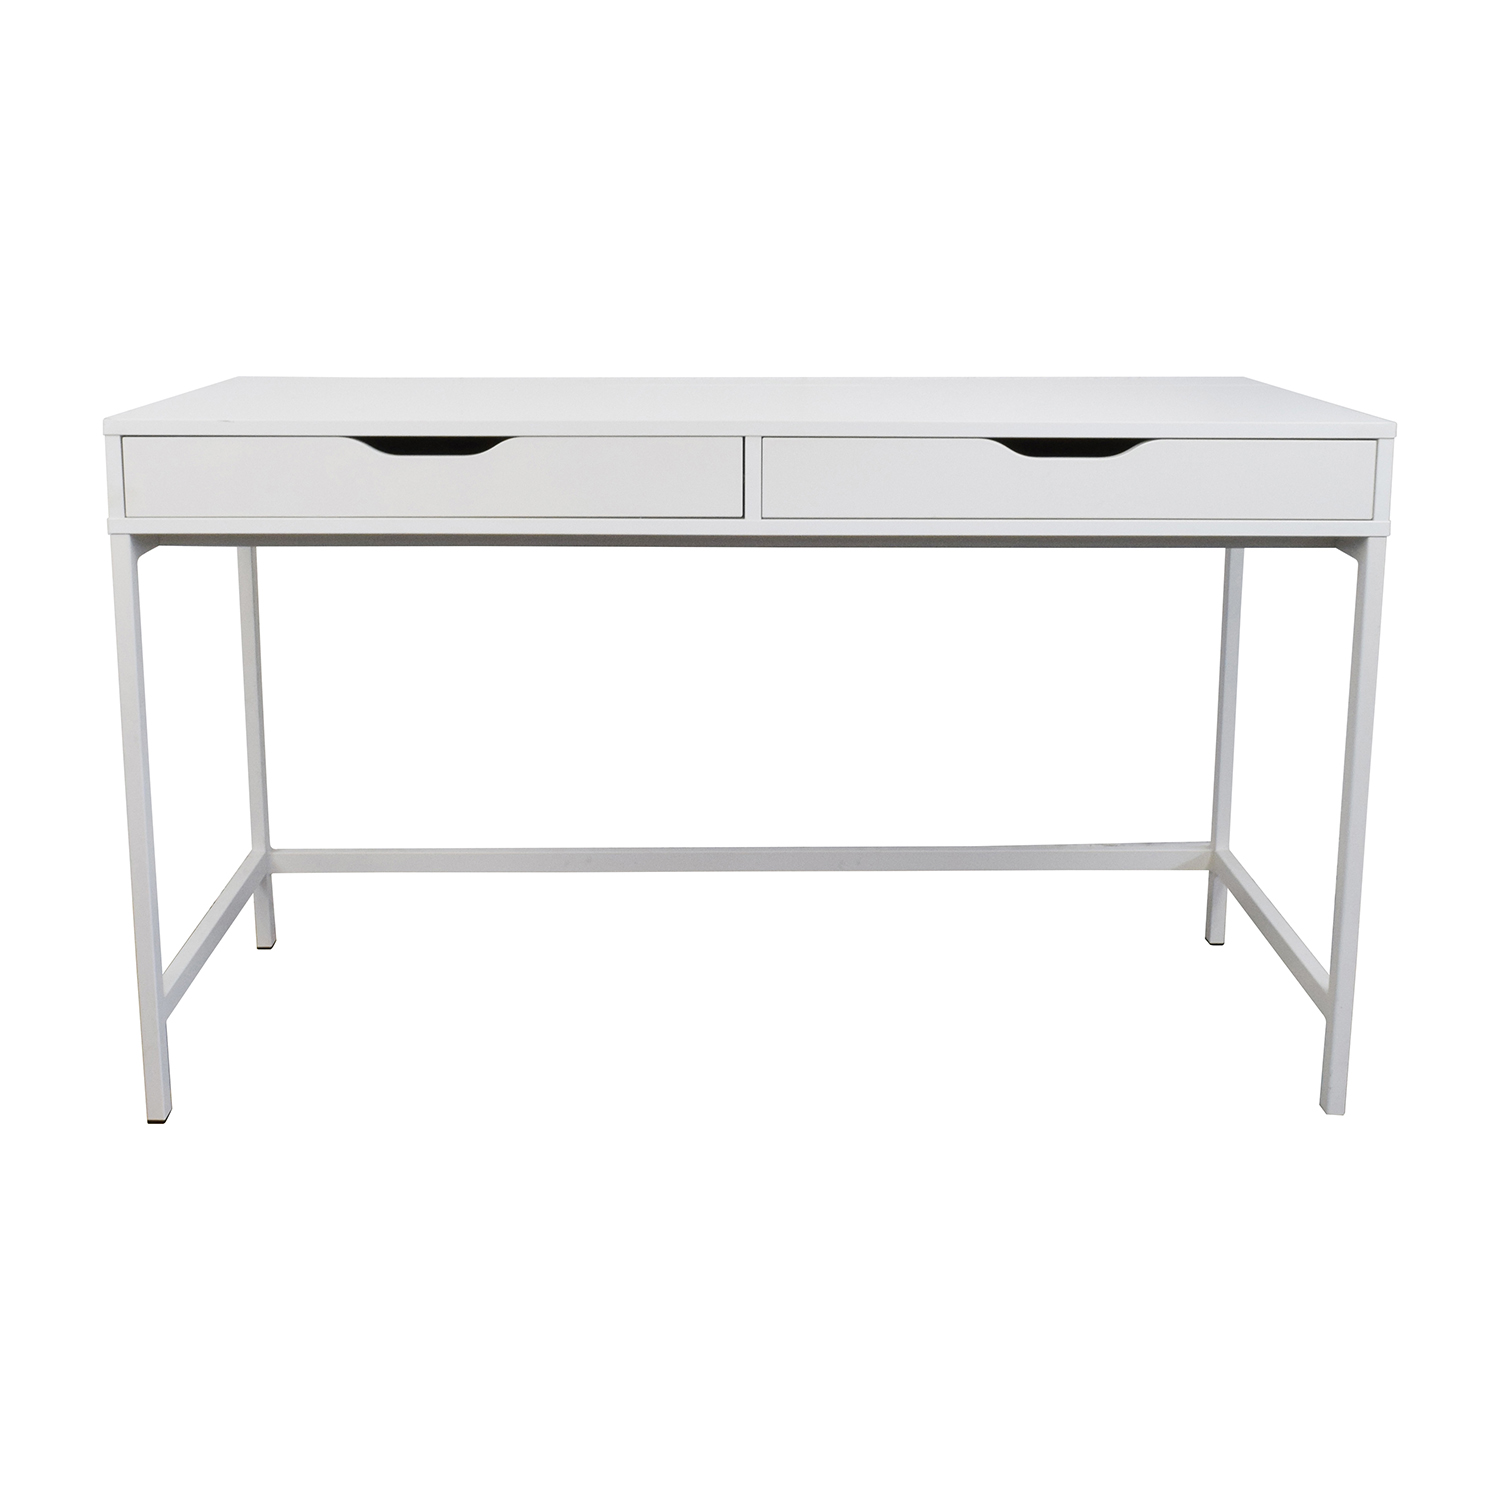 Model 65 OFF IKEA IKEA Glass Top Office Desk Tables.